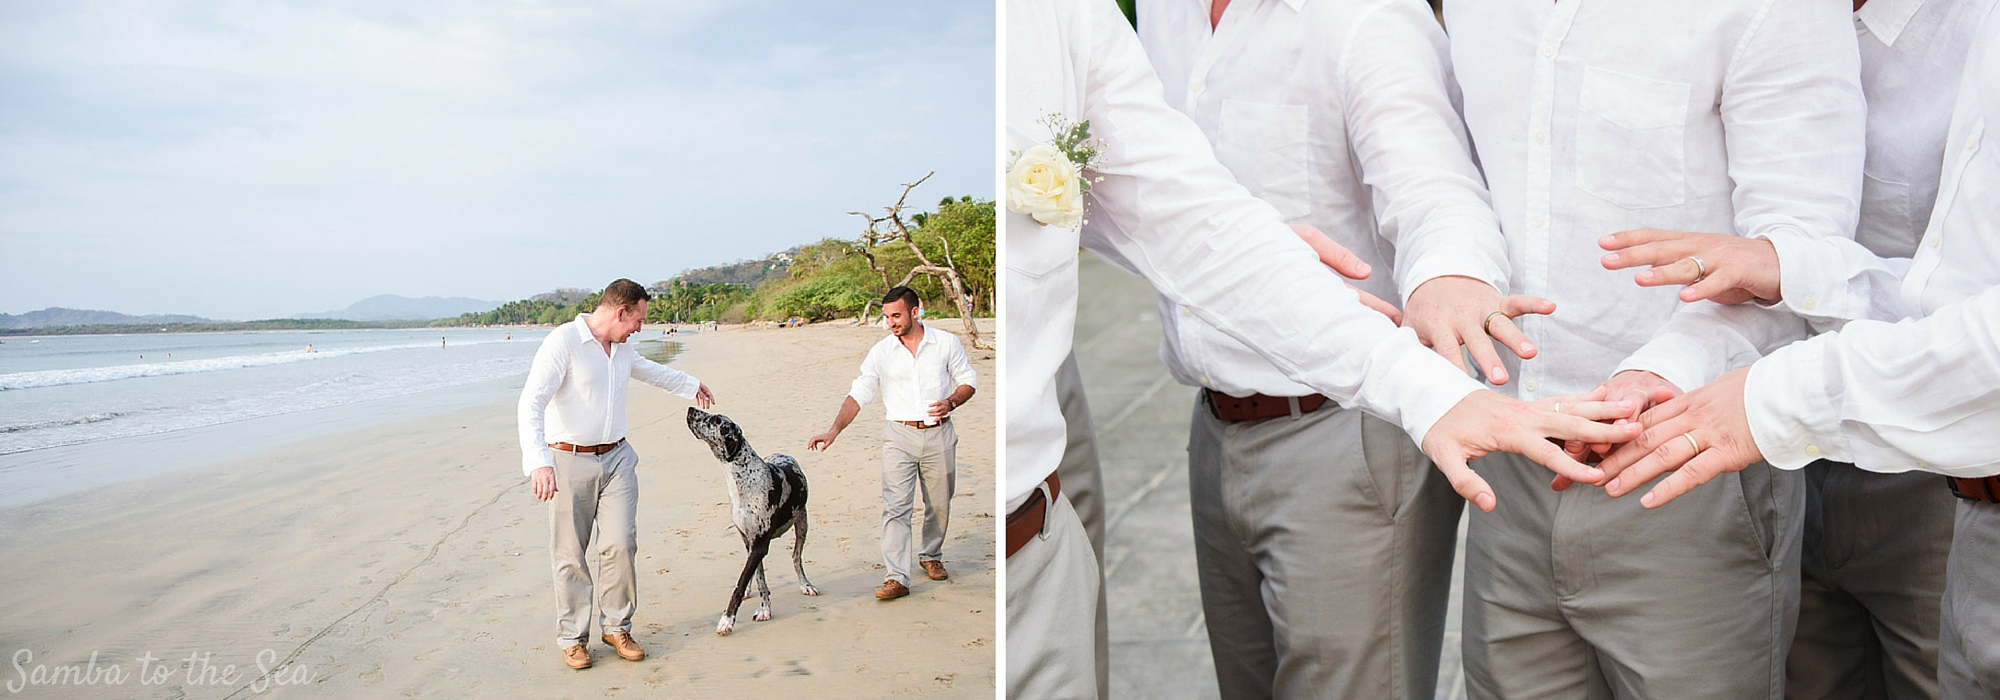 Groomsmen on the beach during destination wedding in Tamarindo, Costa Rica. Photographed by Kristen M. Brown, Samba to the Sea Photography.